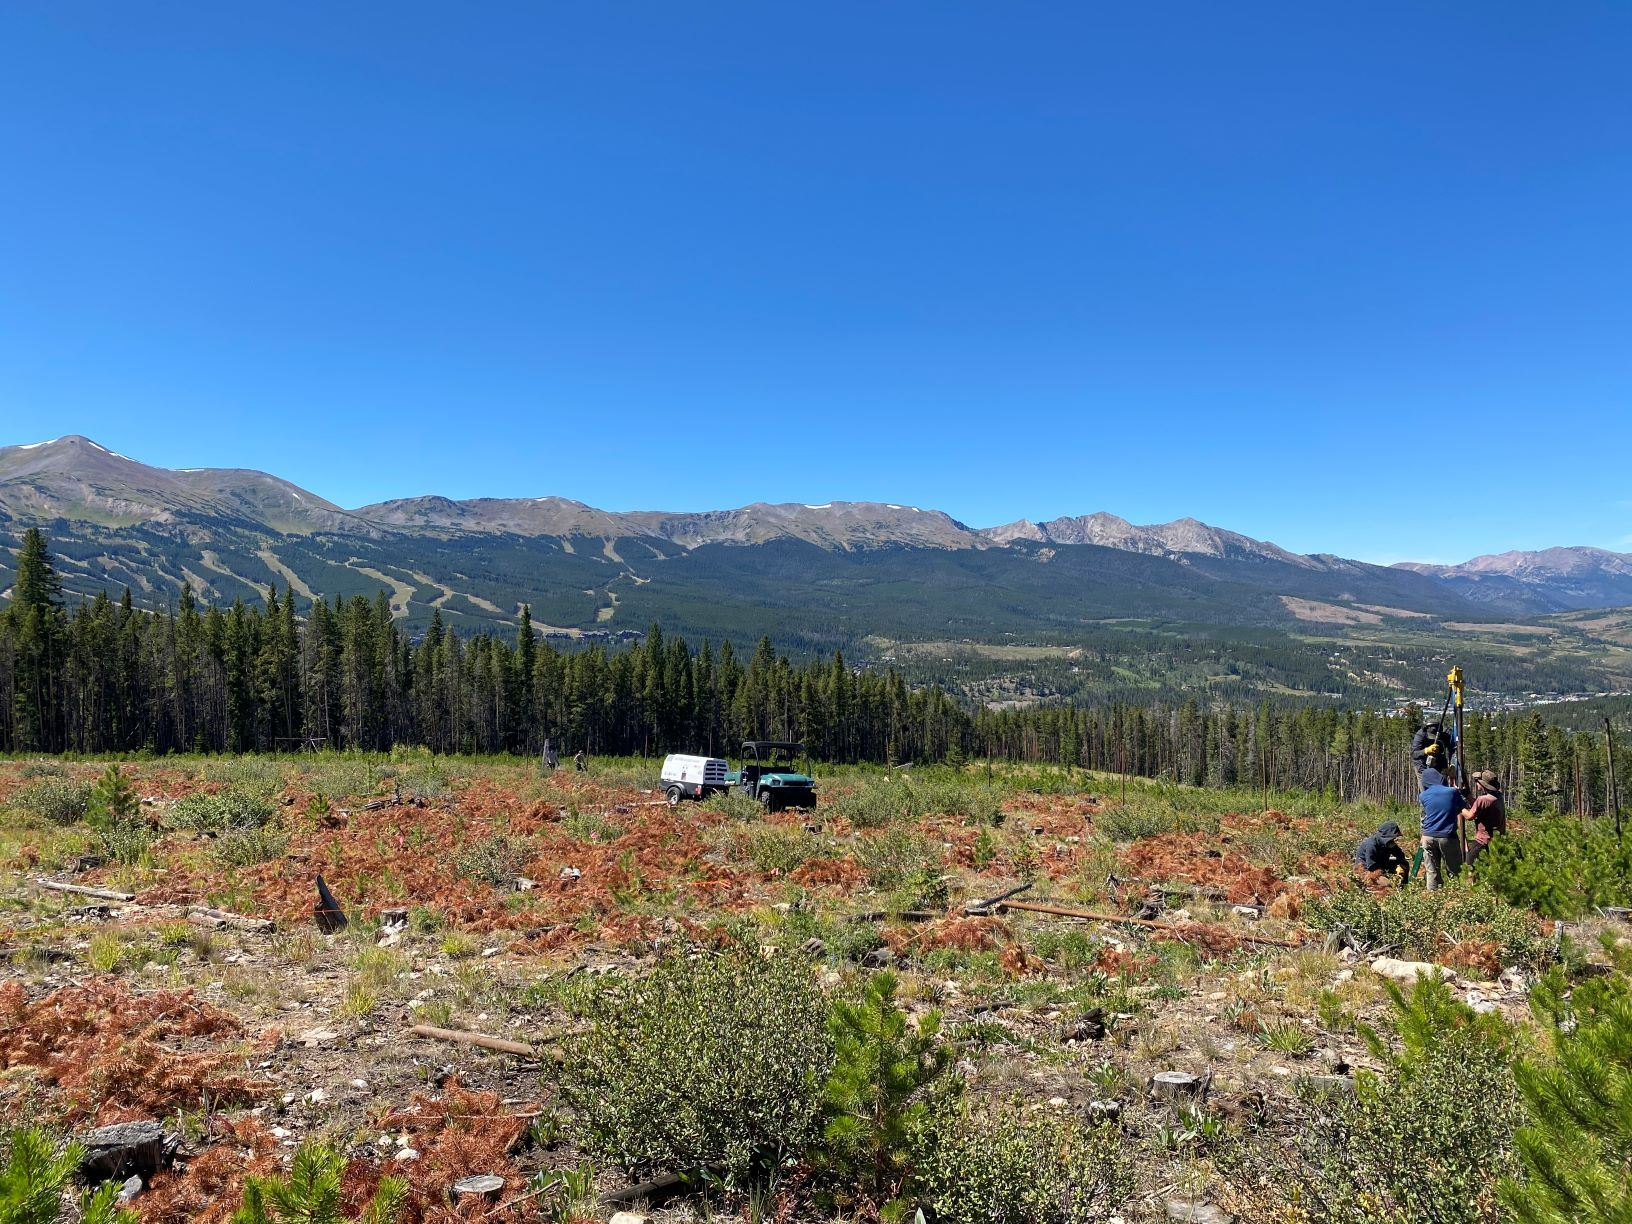 Barney Ford Open Space in summer, with a view of Breckenridge ski area in the background.